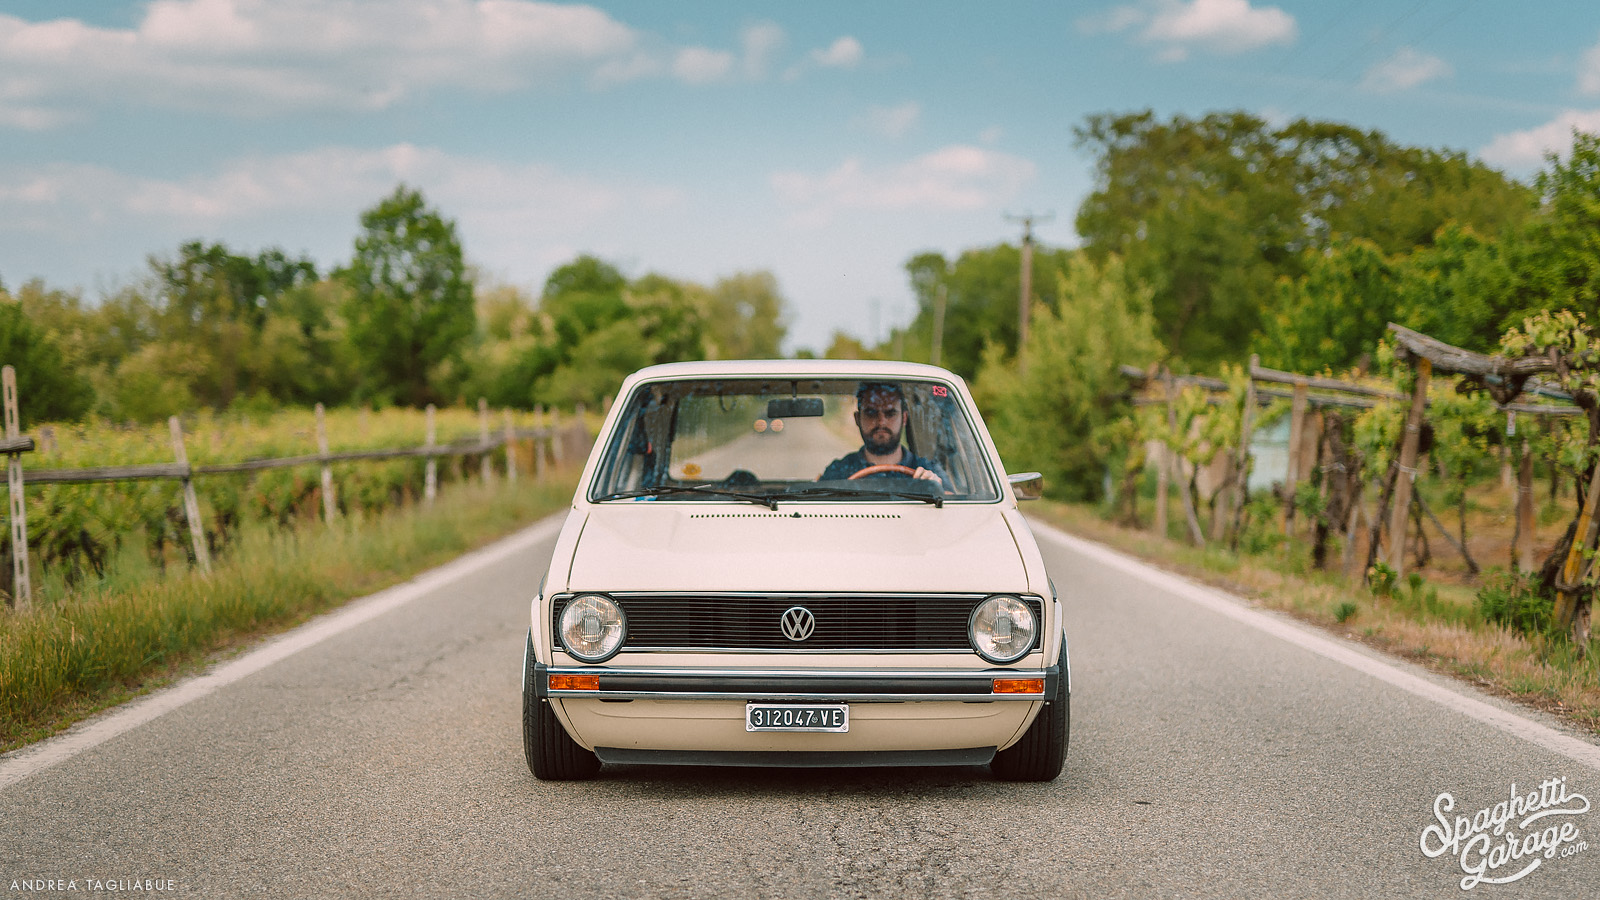 A gem hidden in the vineyards: Paolo's Golf 1 swallowtail